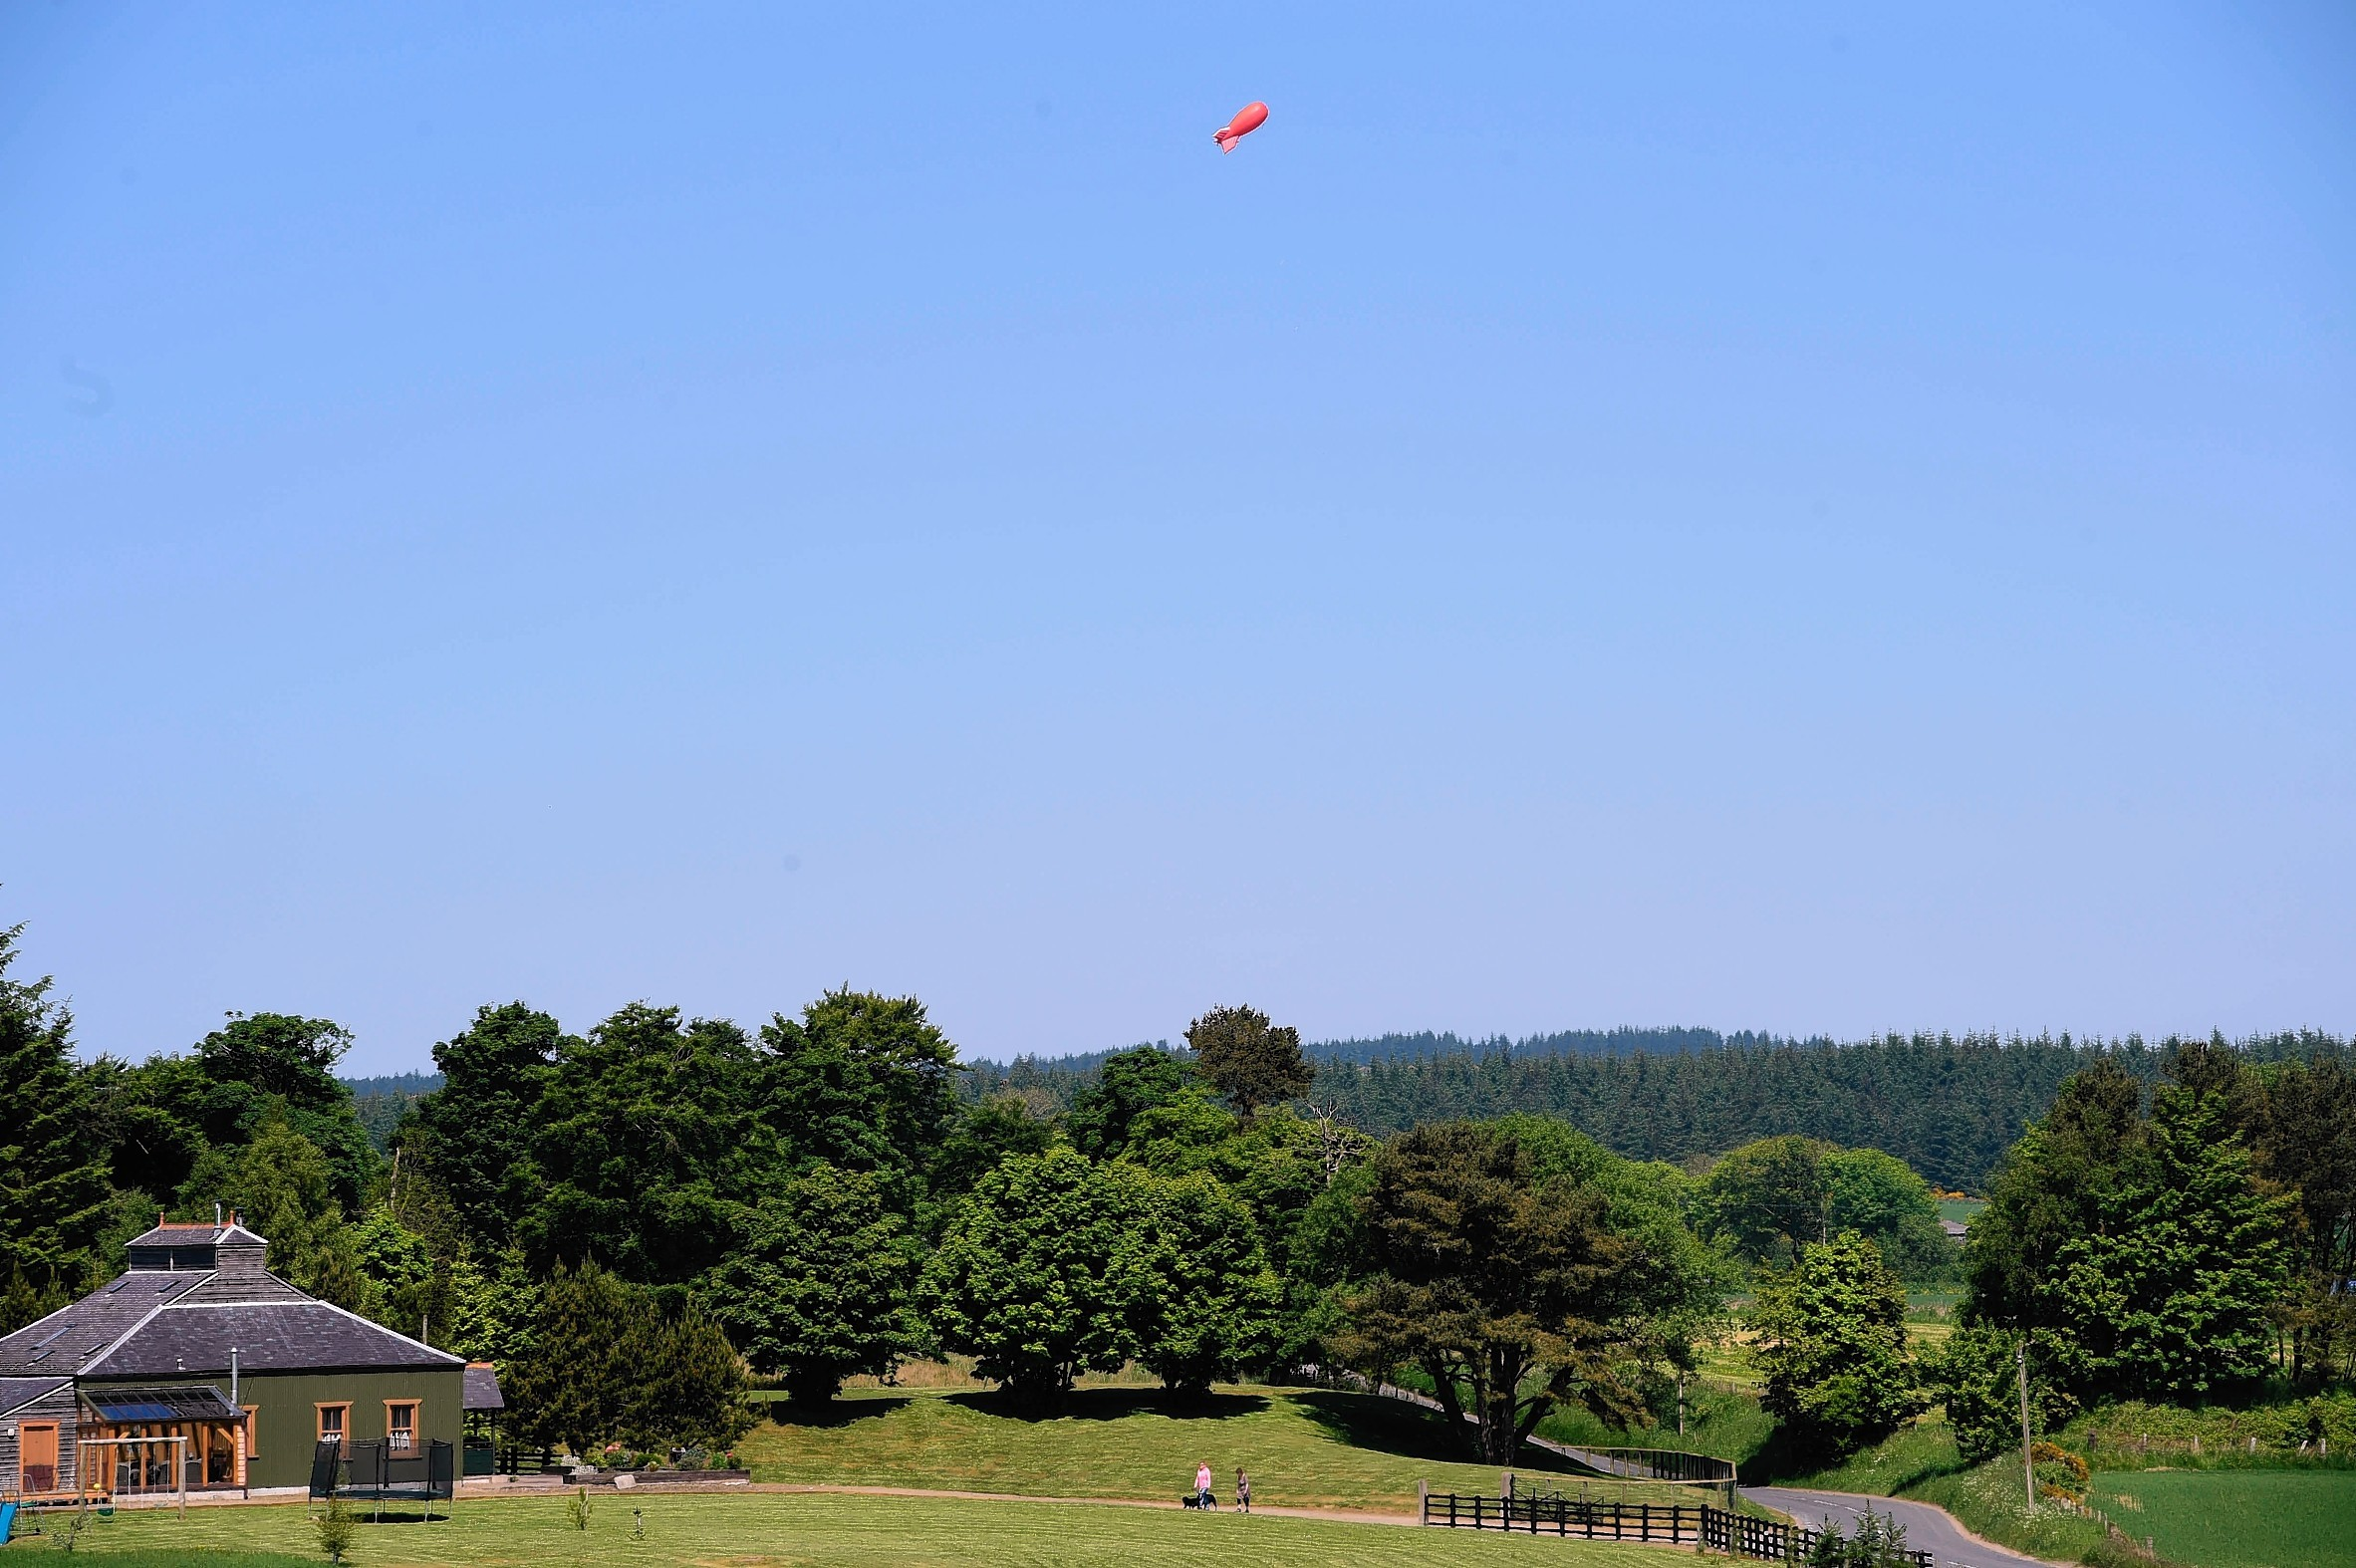 The blimp hired by Cornhill residents demonstrate the height the proposed wind turbine would reach. (Ross/Brown)